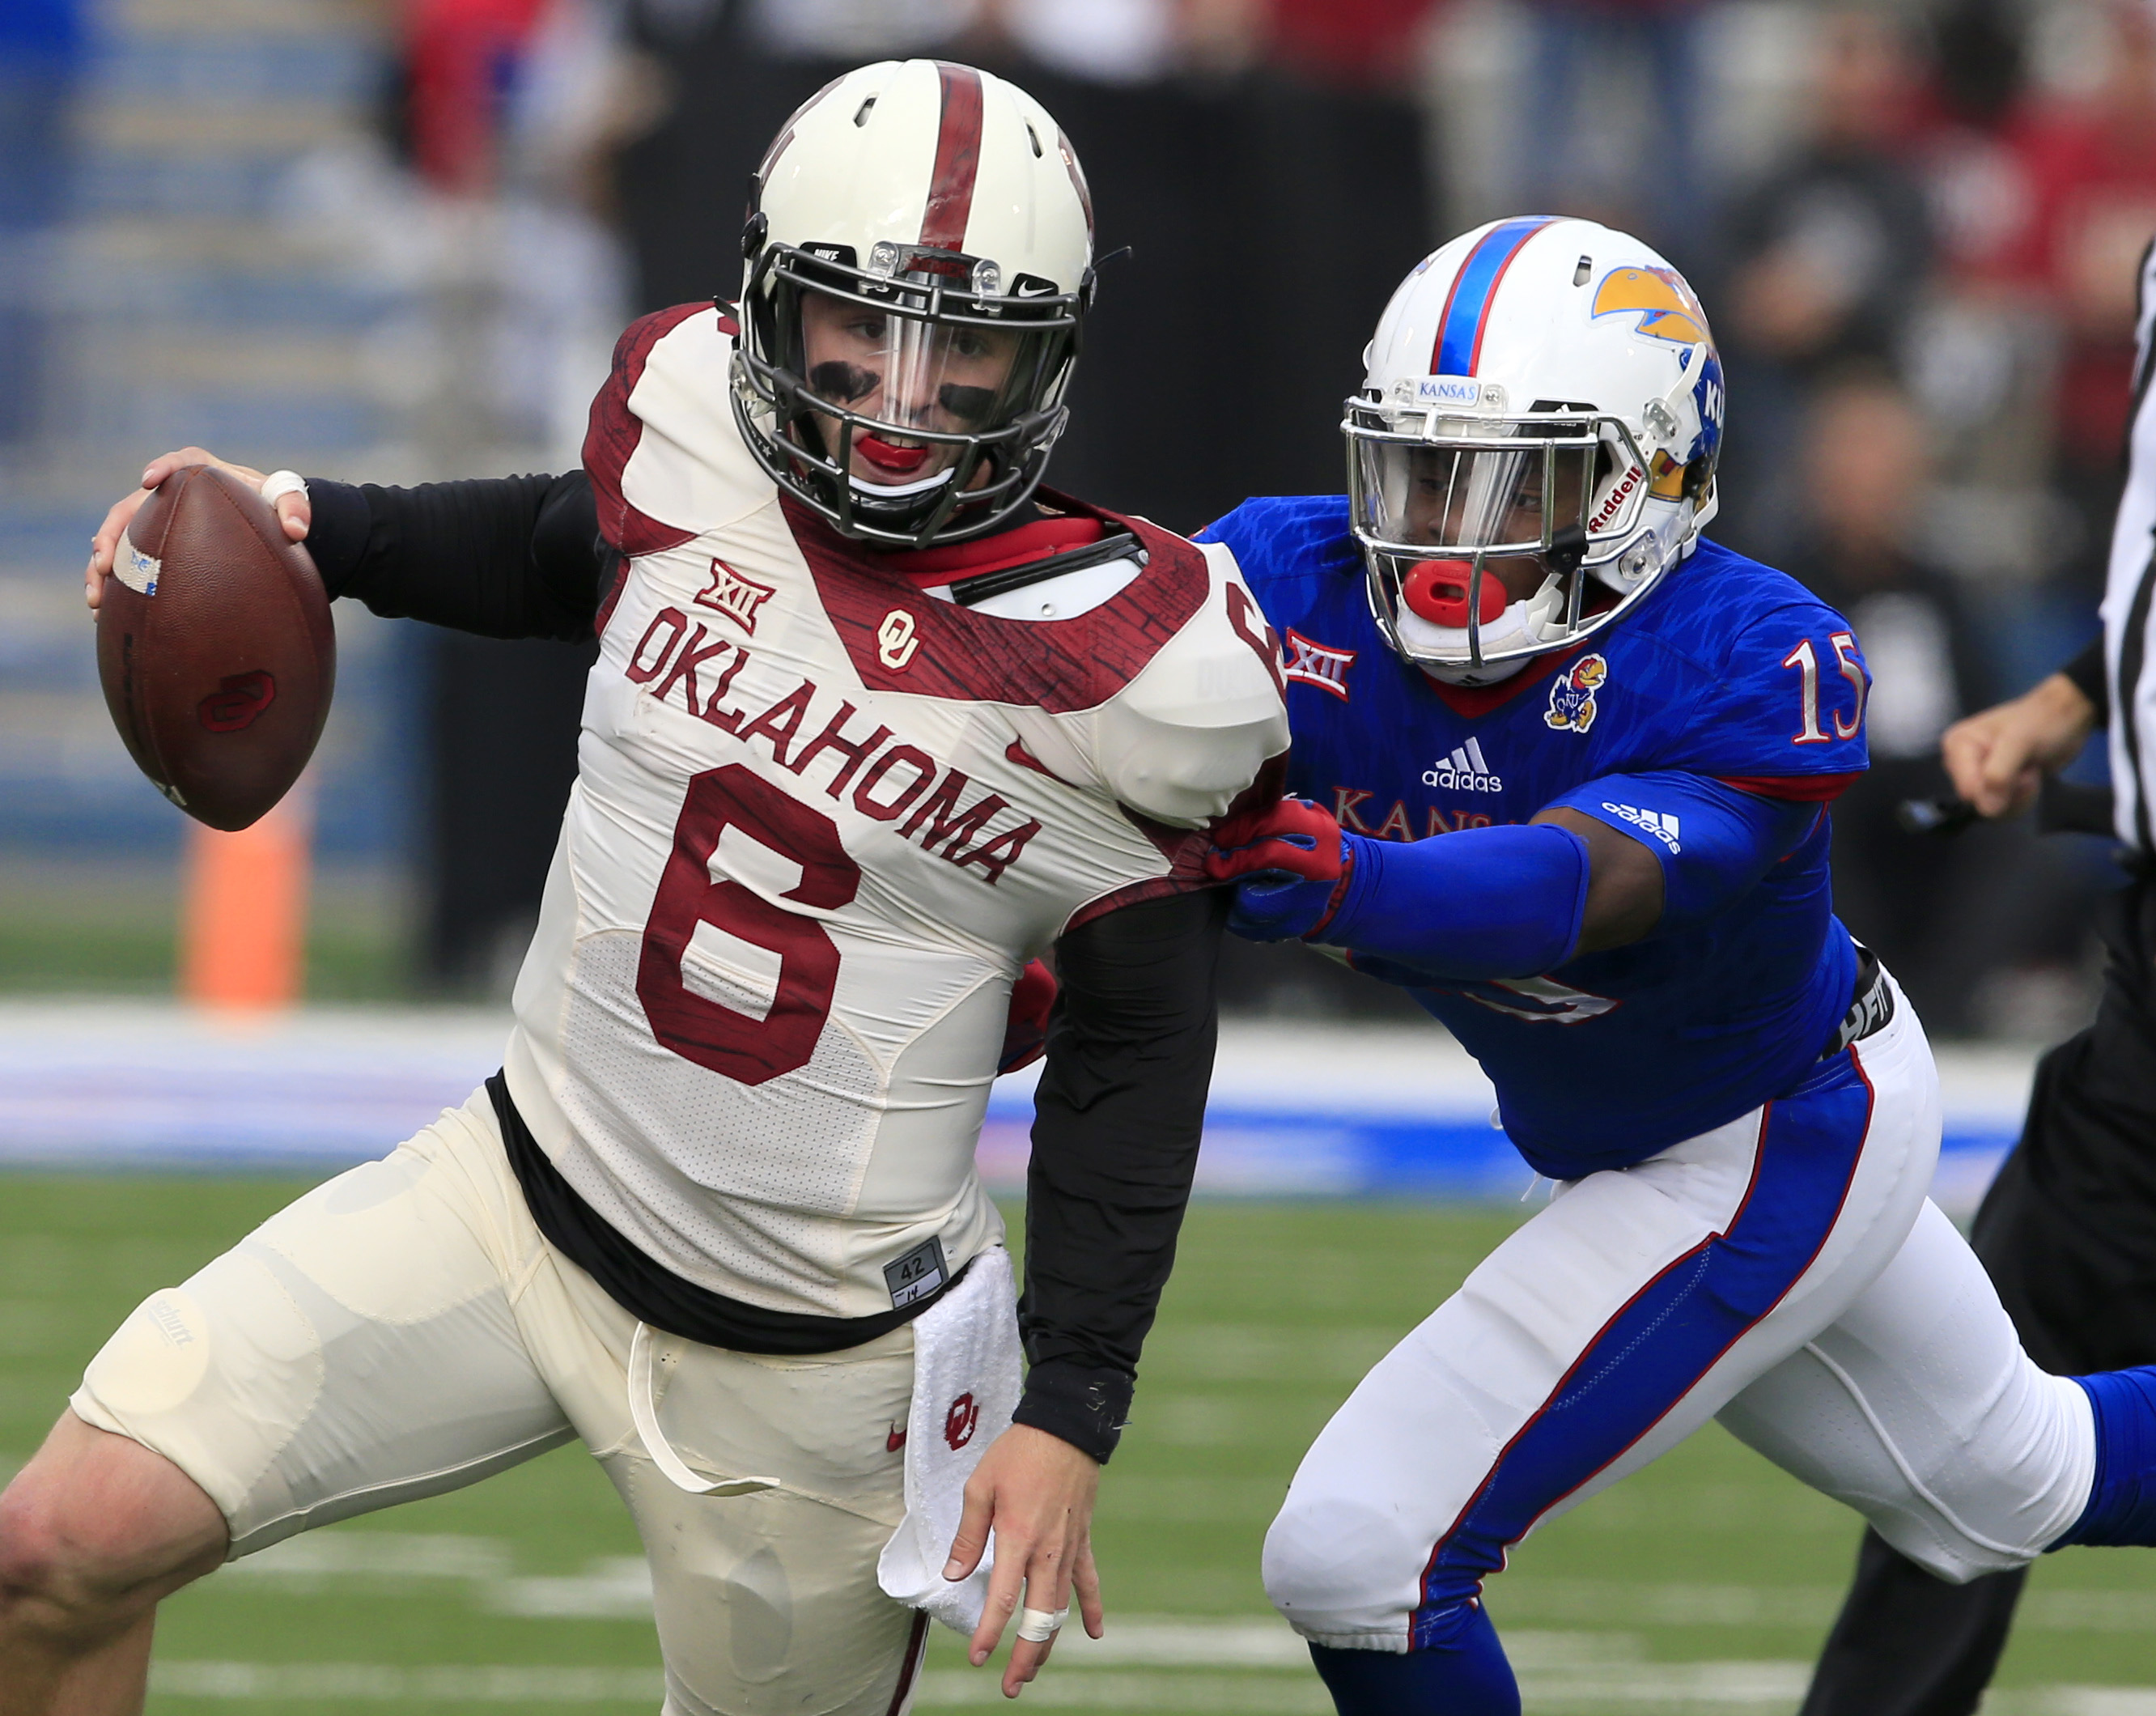 Oklahoma quarterback Baker Mayfield (6) gets away from Kansas cornerback Chevy Graham (15) during the first half of an NCAA college football game in Lawrence, Kan., Saturday, Oct. 31, 2015. (AP Photo/Orlin Wagner)